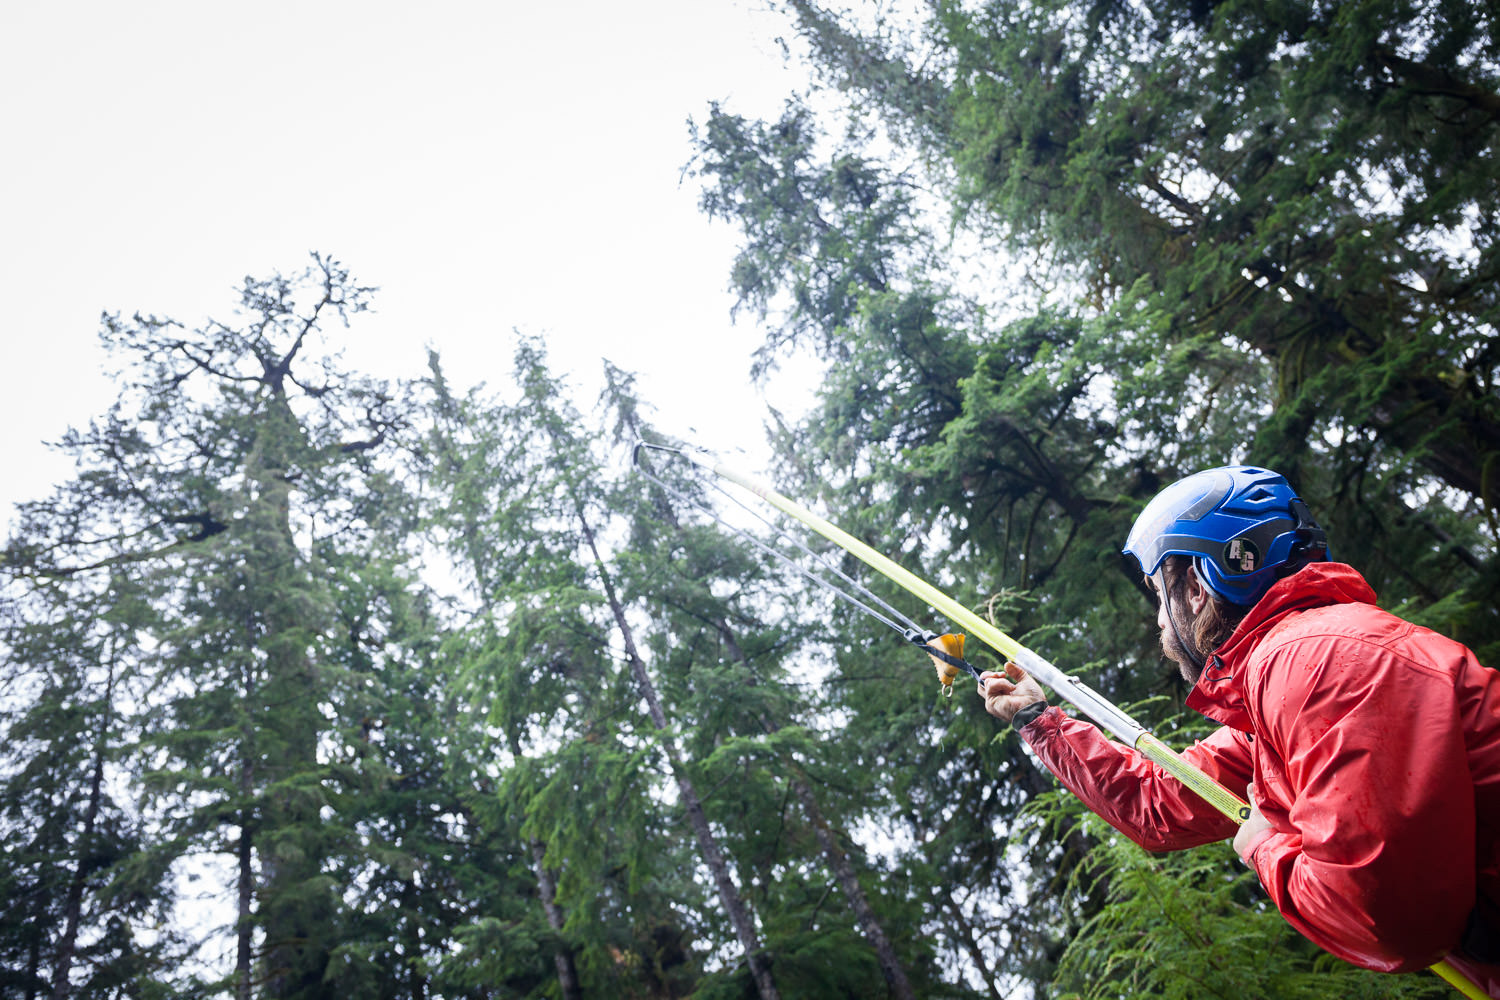 Matthew Beatty aims the Bigshot slingshot with the hopes of firing a bean bag over a large branch 200ft in the air.